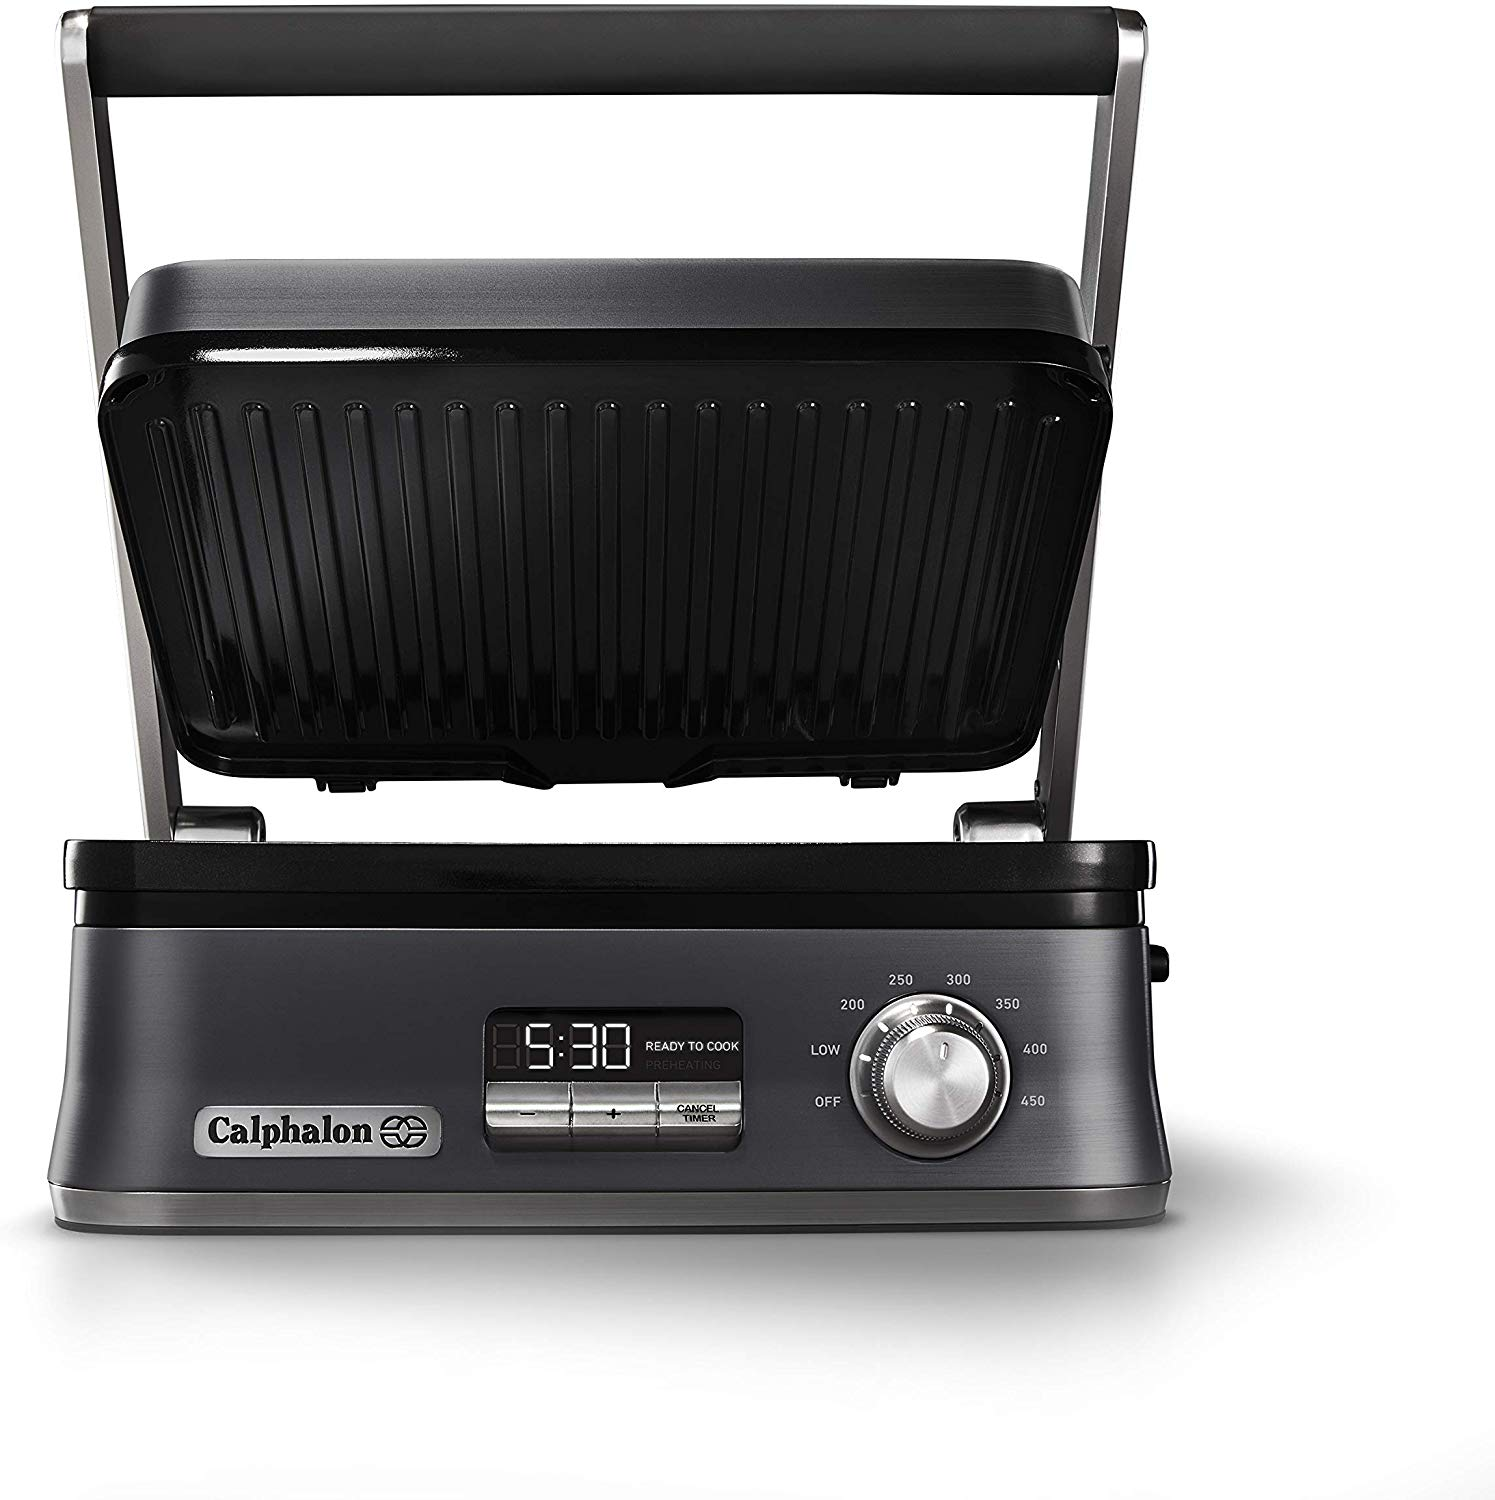 Calphalon Even Sear Indoor Electric Multi-Grill only $59.00! (was $100)